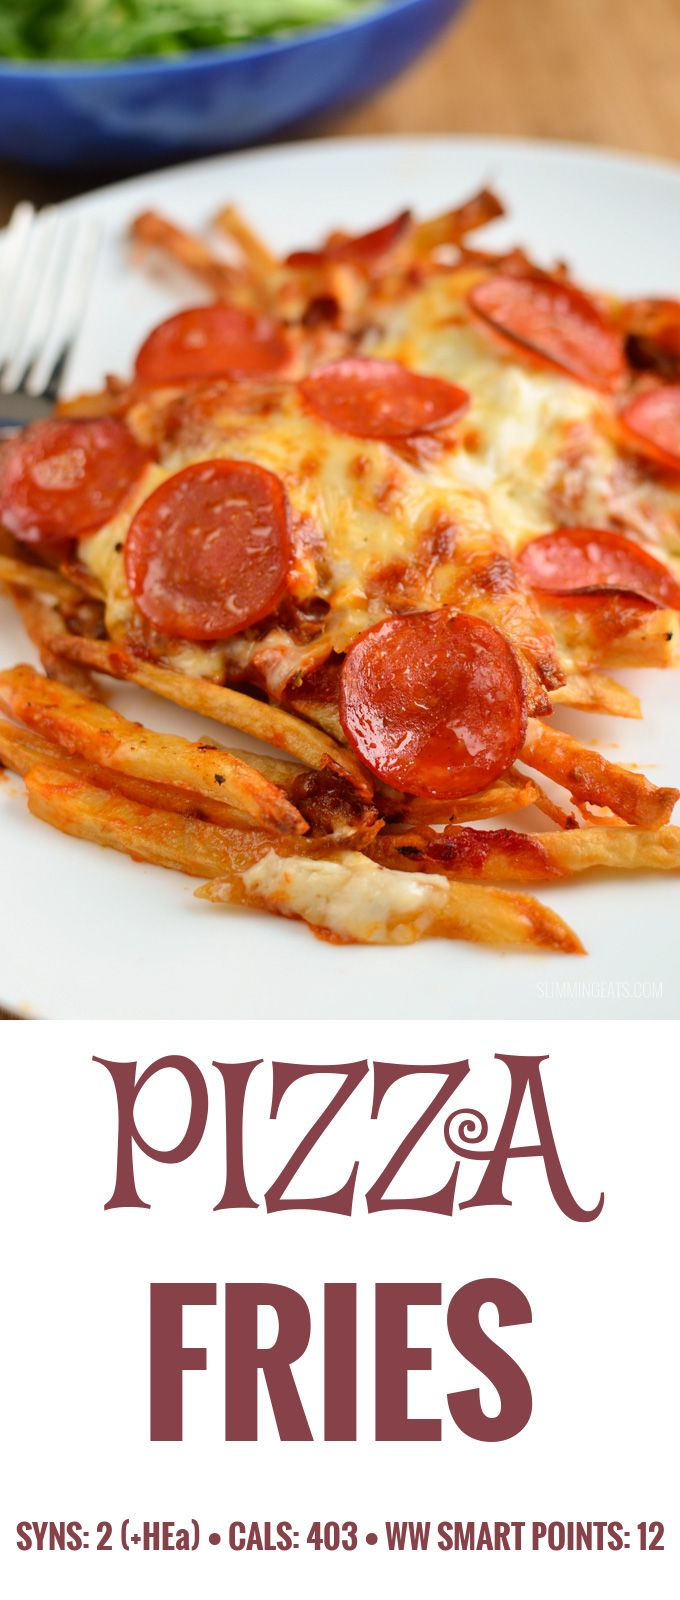 Slimming Eats Pizza Fries - gluten free, vegetarian, Slimming World and Weight Watchers friendly